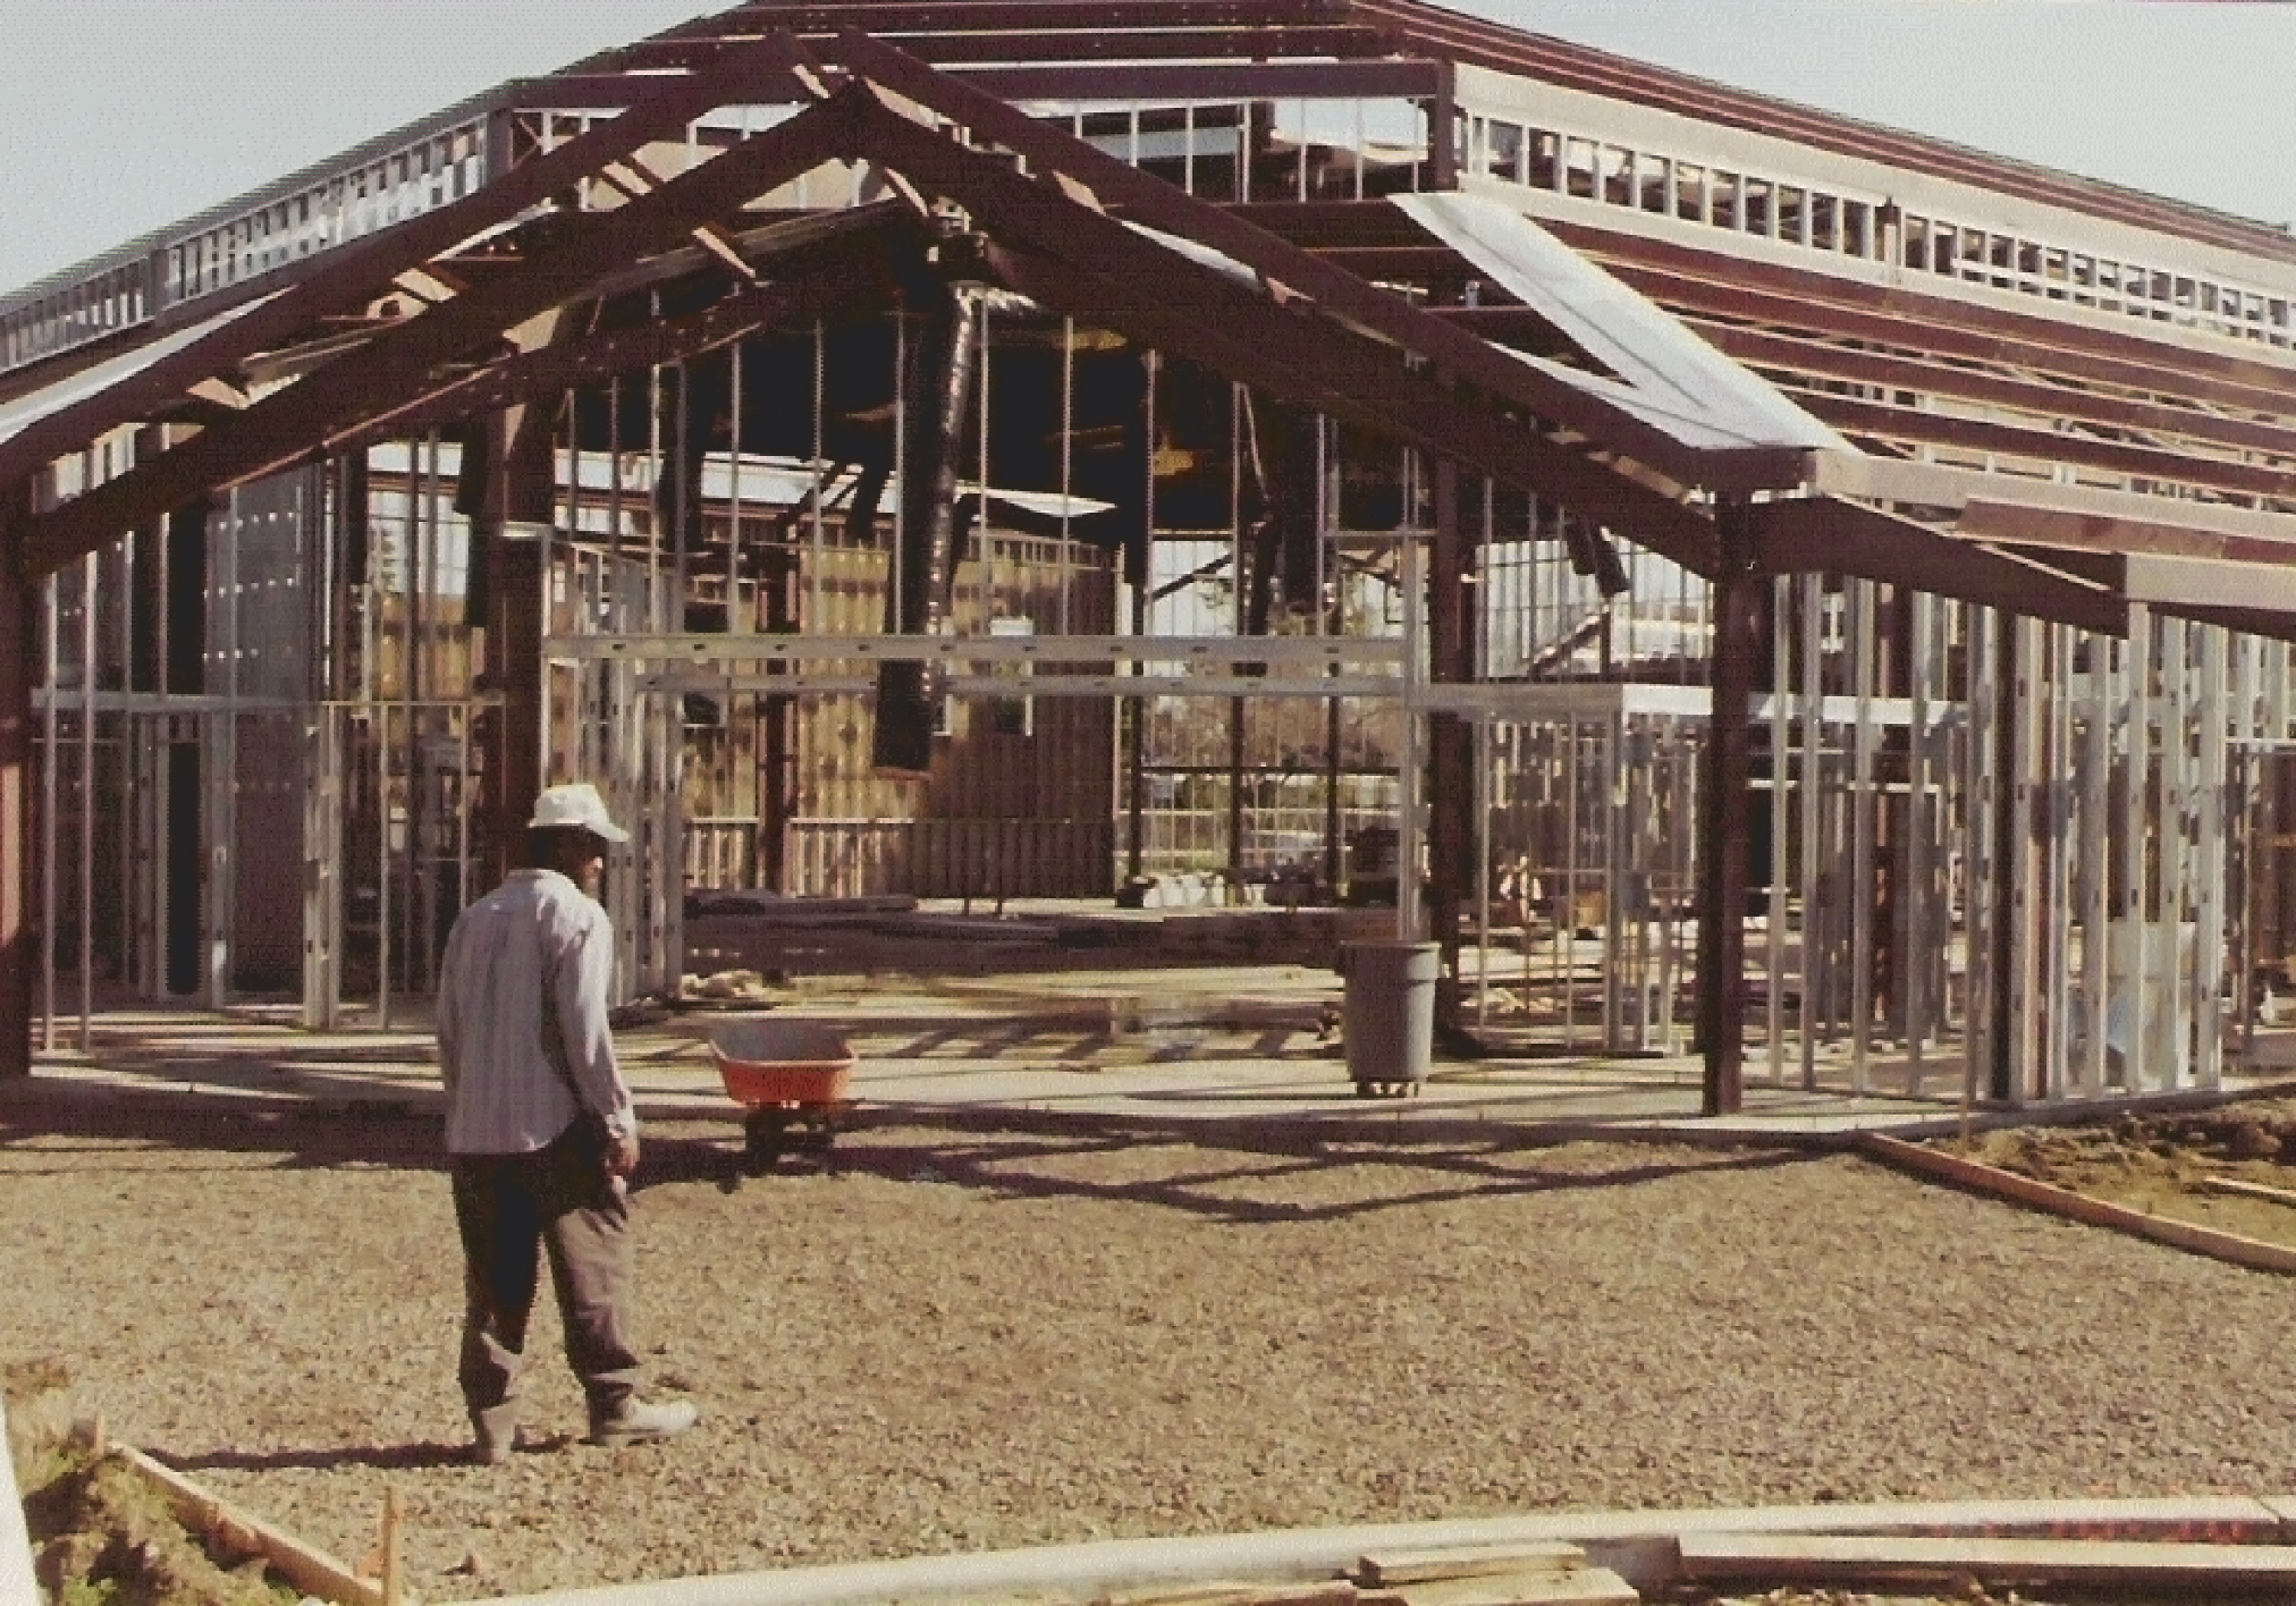 Church being Built